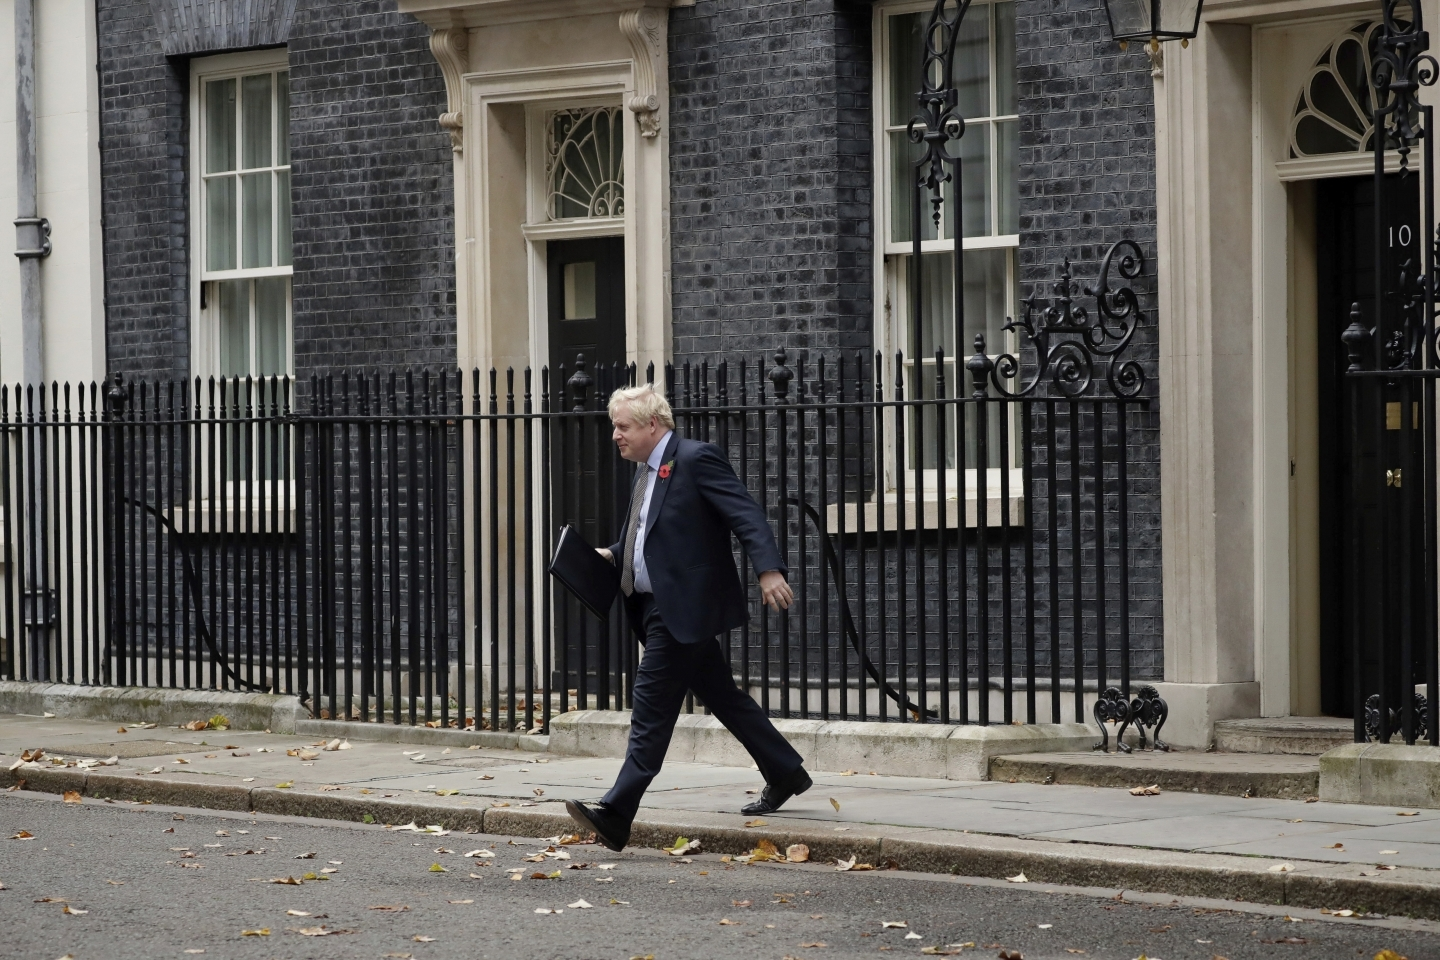 Britain's Prime Minister Boris Johnson walks from the front door of 10 Downing Street, London, on November 6, 2019 ahead of the formal start of the general election. (AP Photo/Matt Dunham)